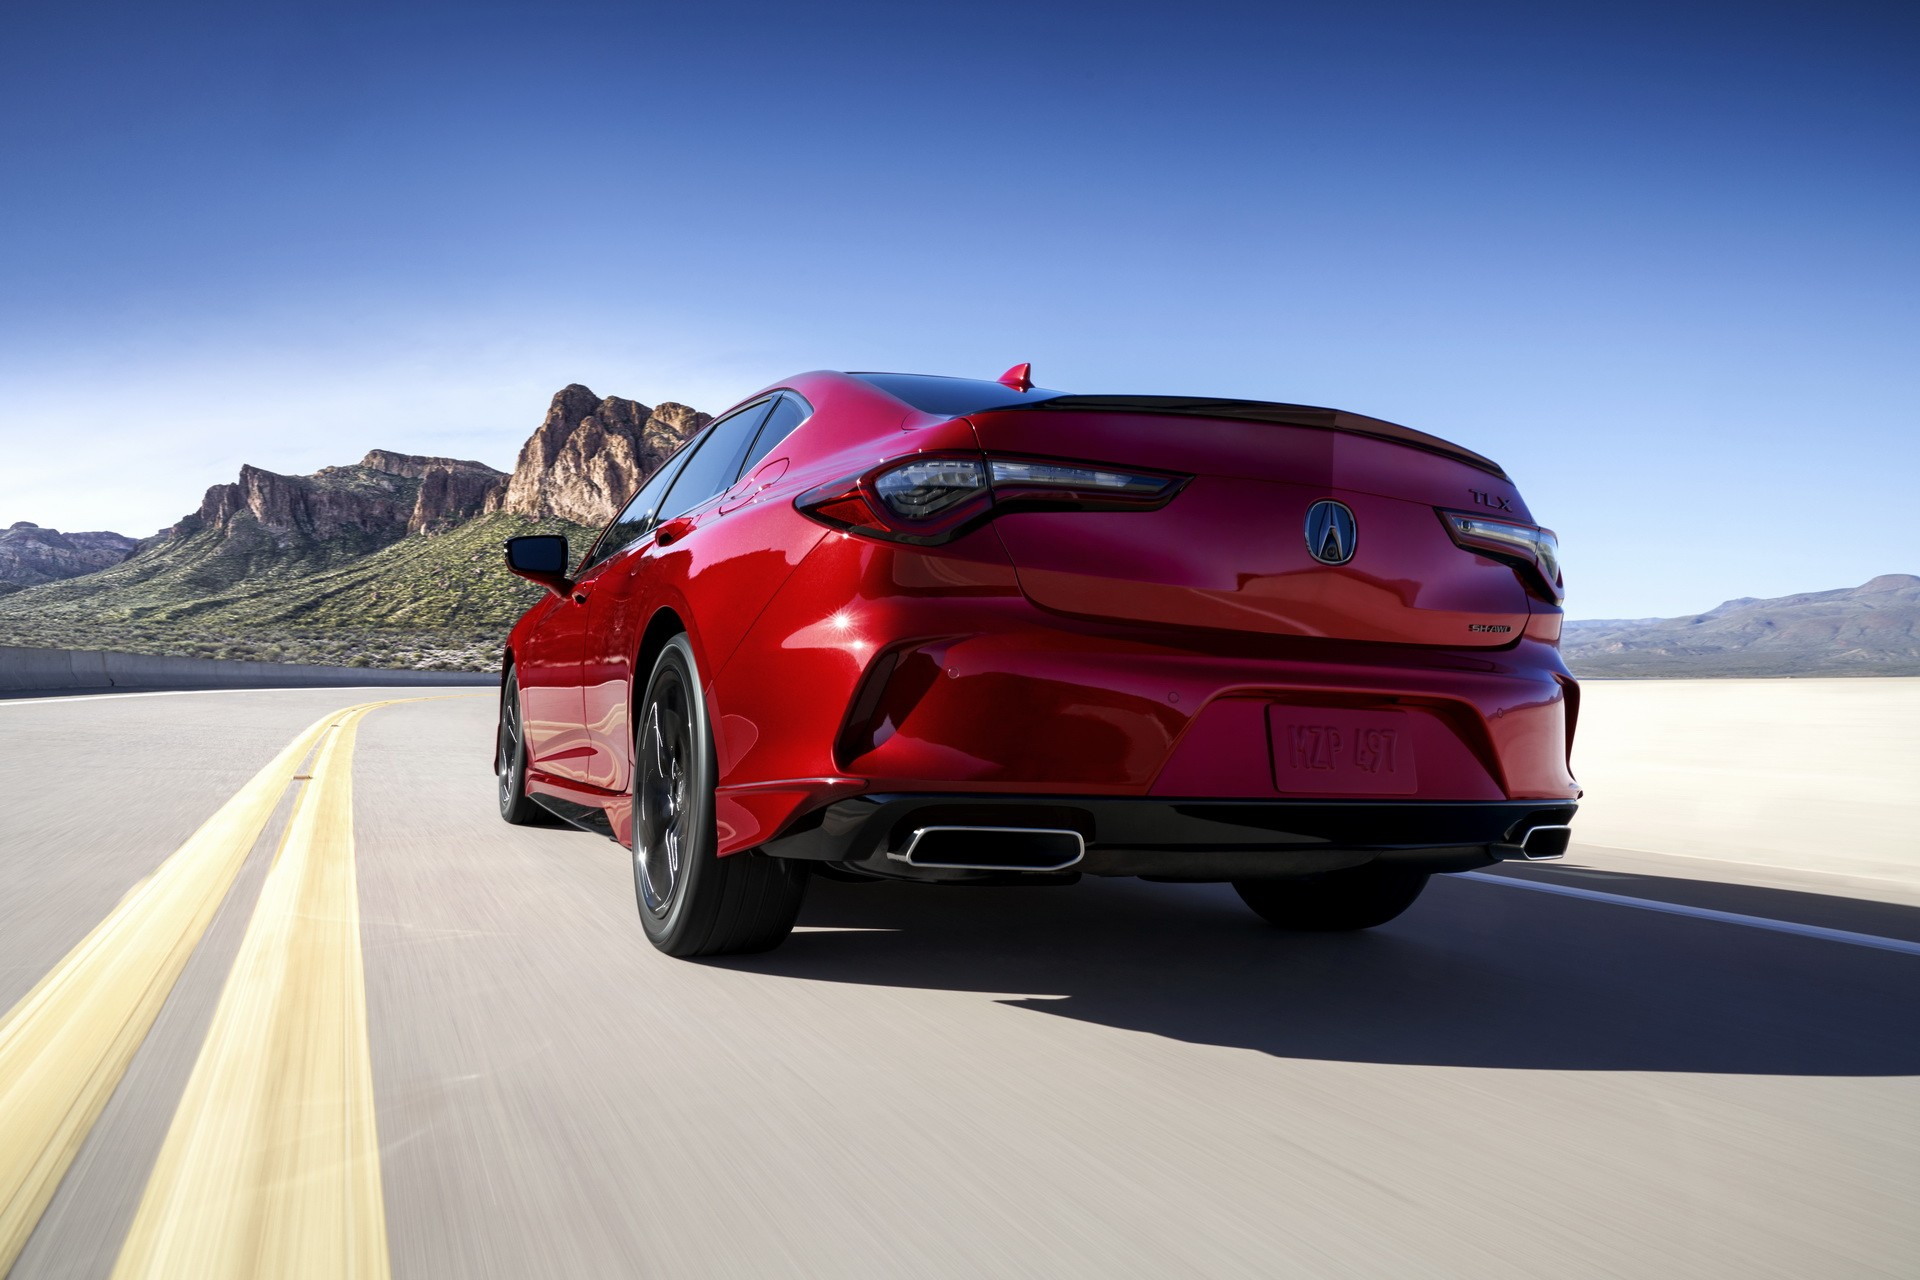 2021 acura tlx is a gorgeous new sedan, type s has 3-liter